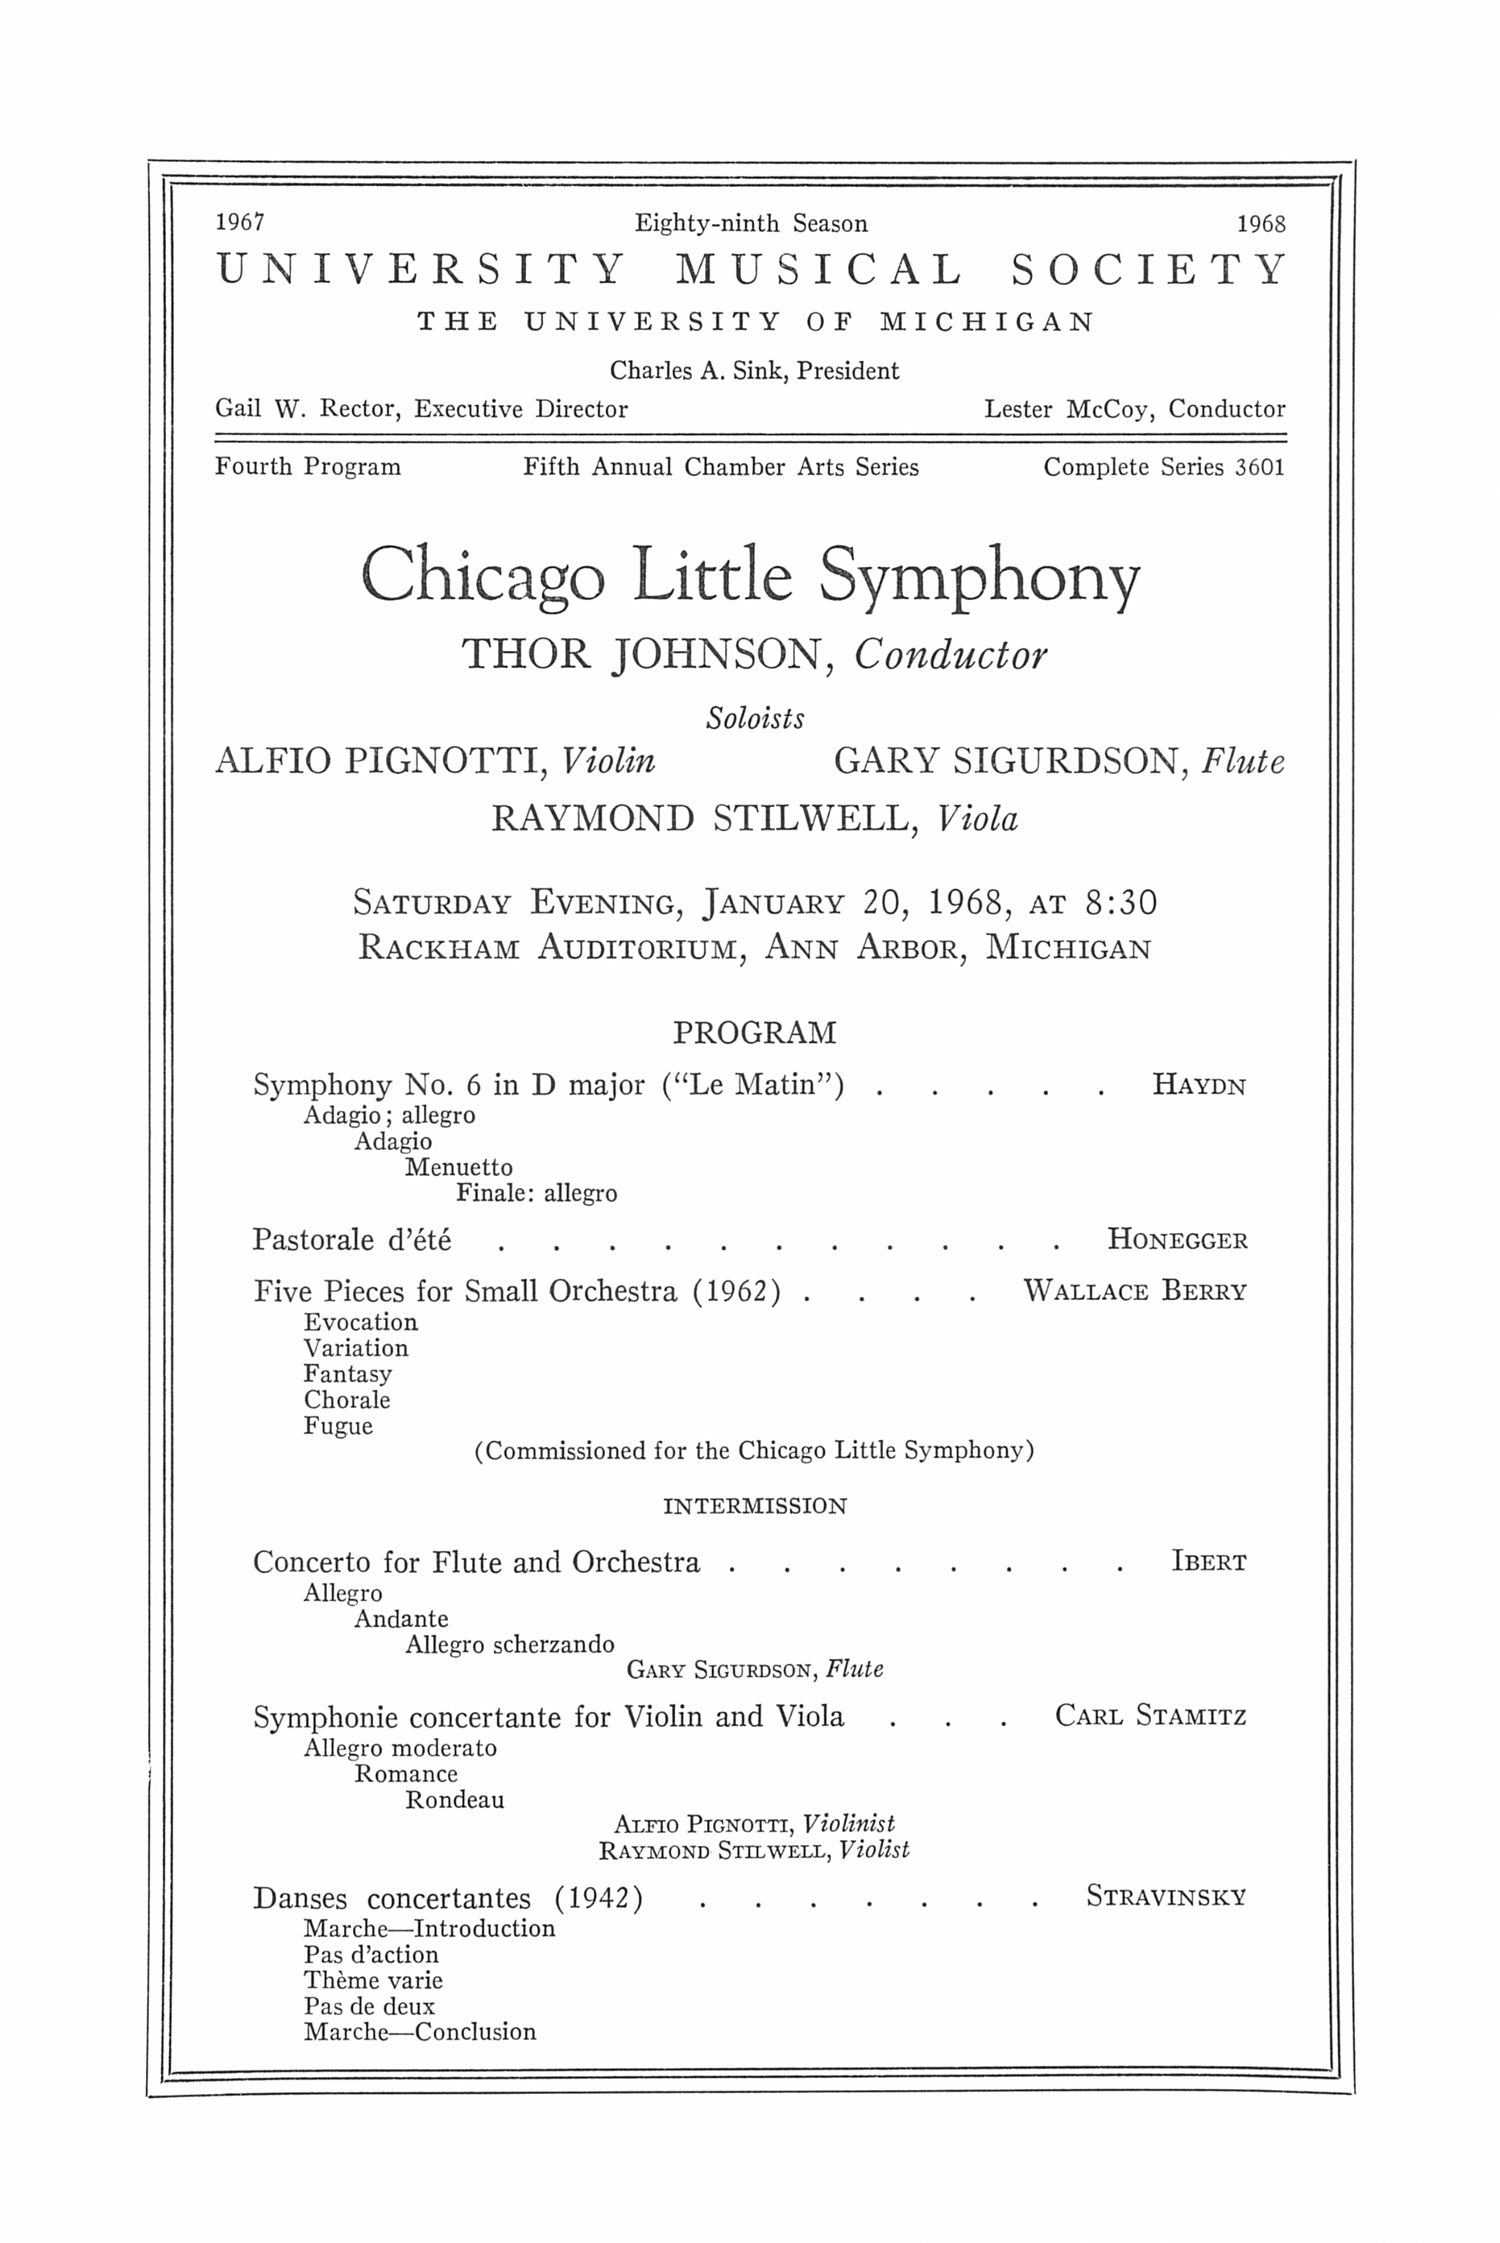 UMS Concert Program, January 20, 1968: Chicago Little Symphony -- Thor Johnson image